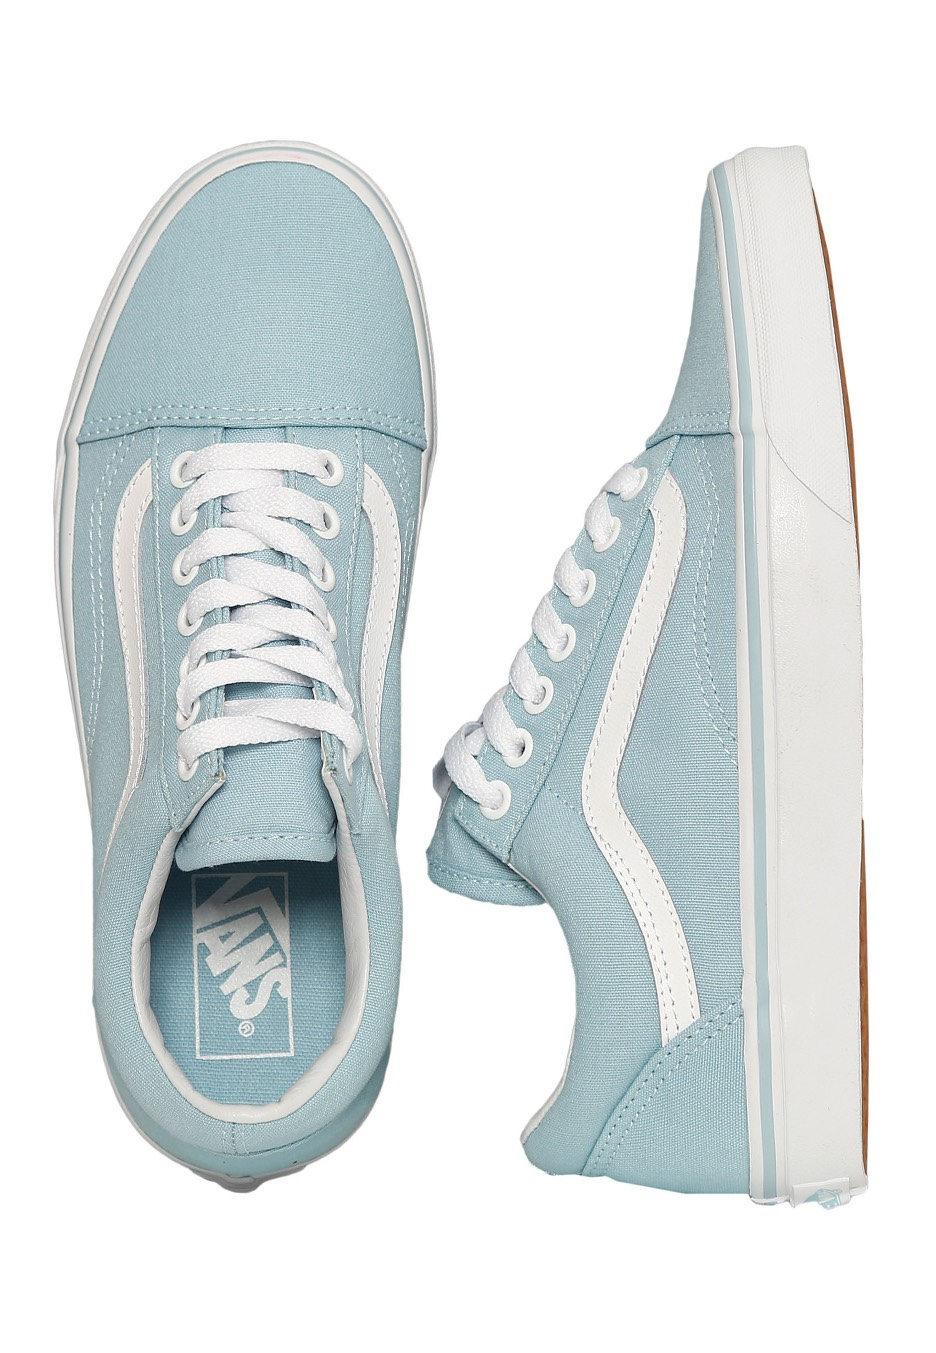 49deffa6134d Vans - Old Skool Crystal Blue True White - Girl Shoes - Impericon.com  Worldwide